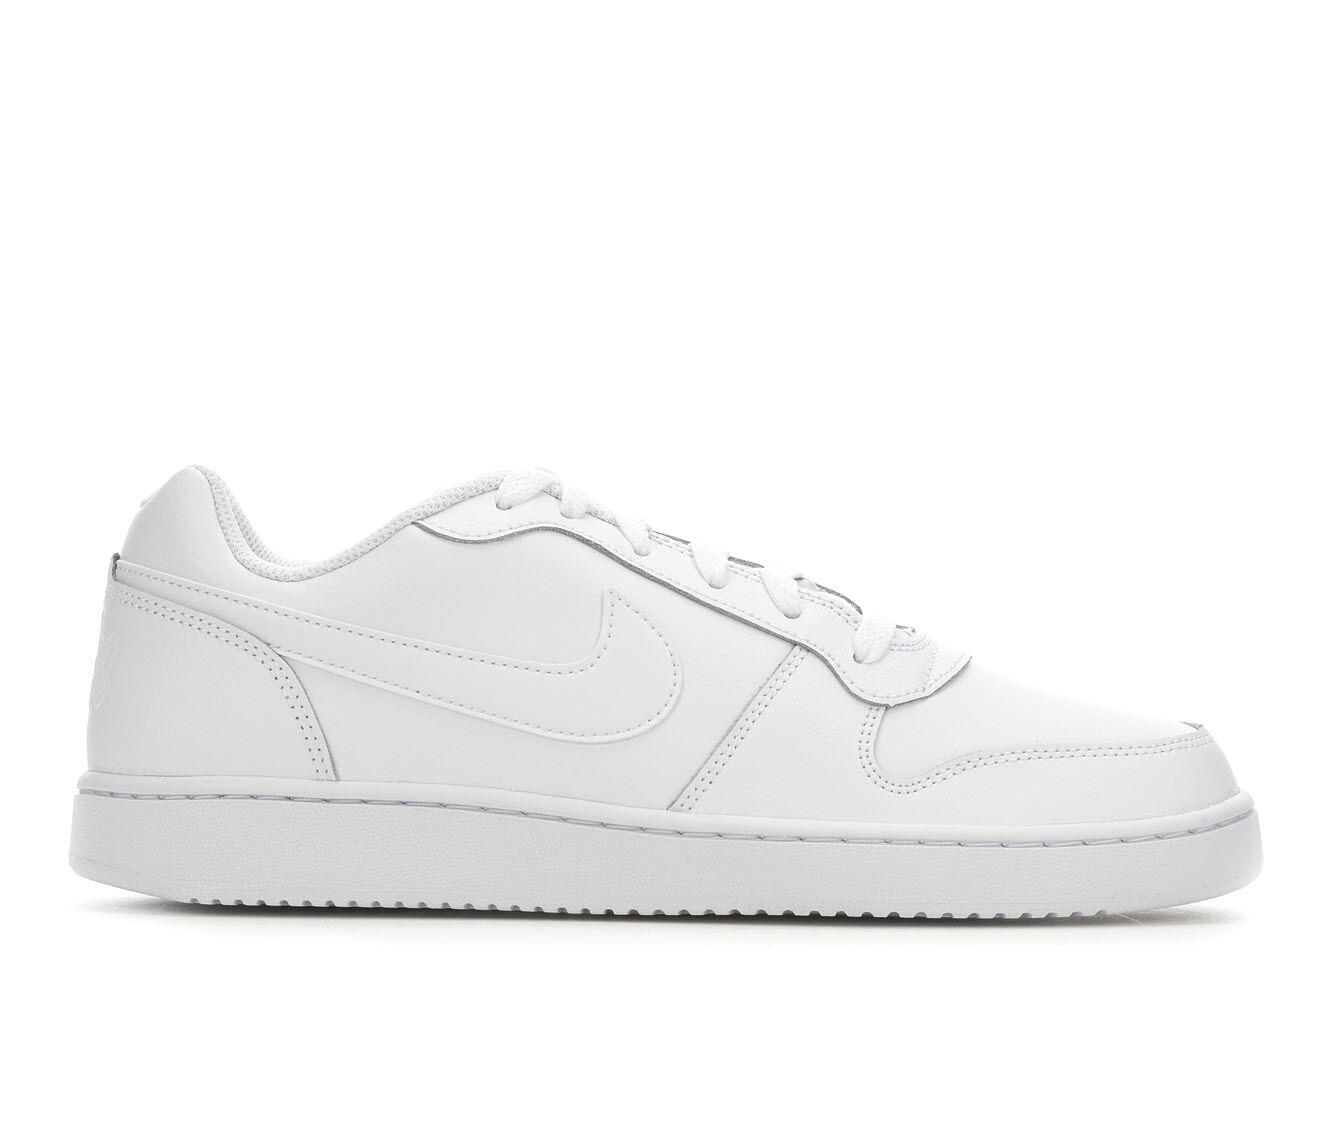 Men's Nike Ebernon Low Sneakers Wht/Wht 100